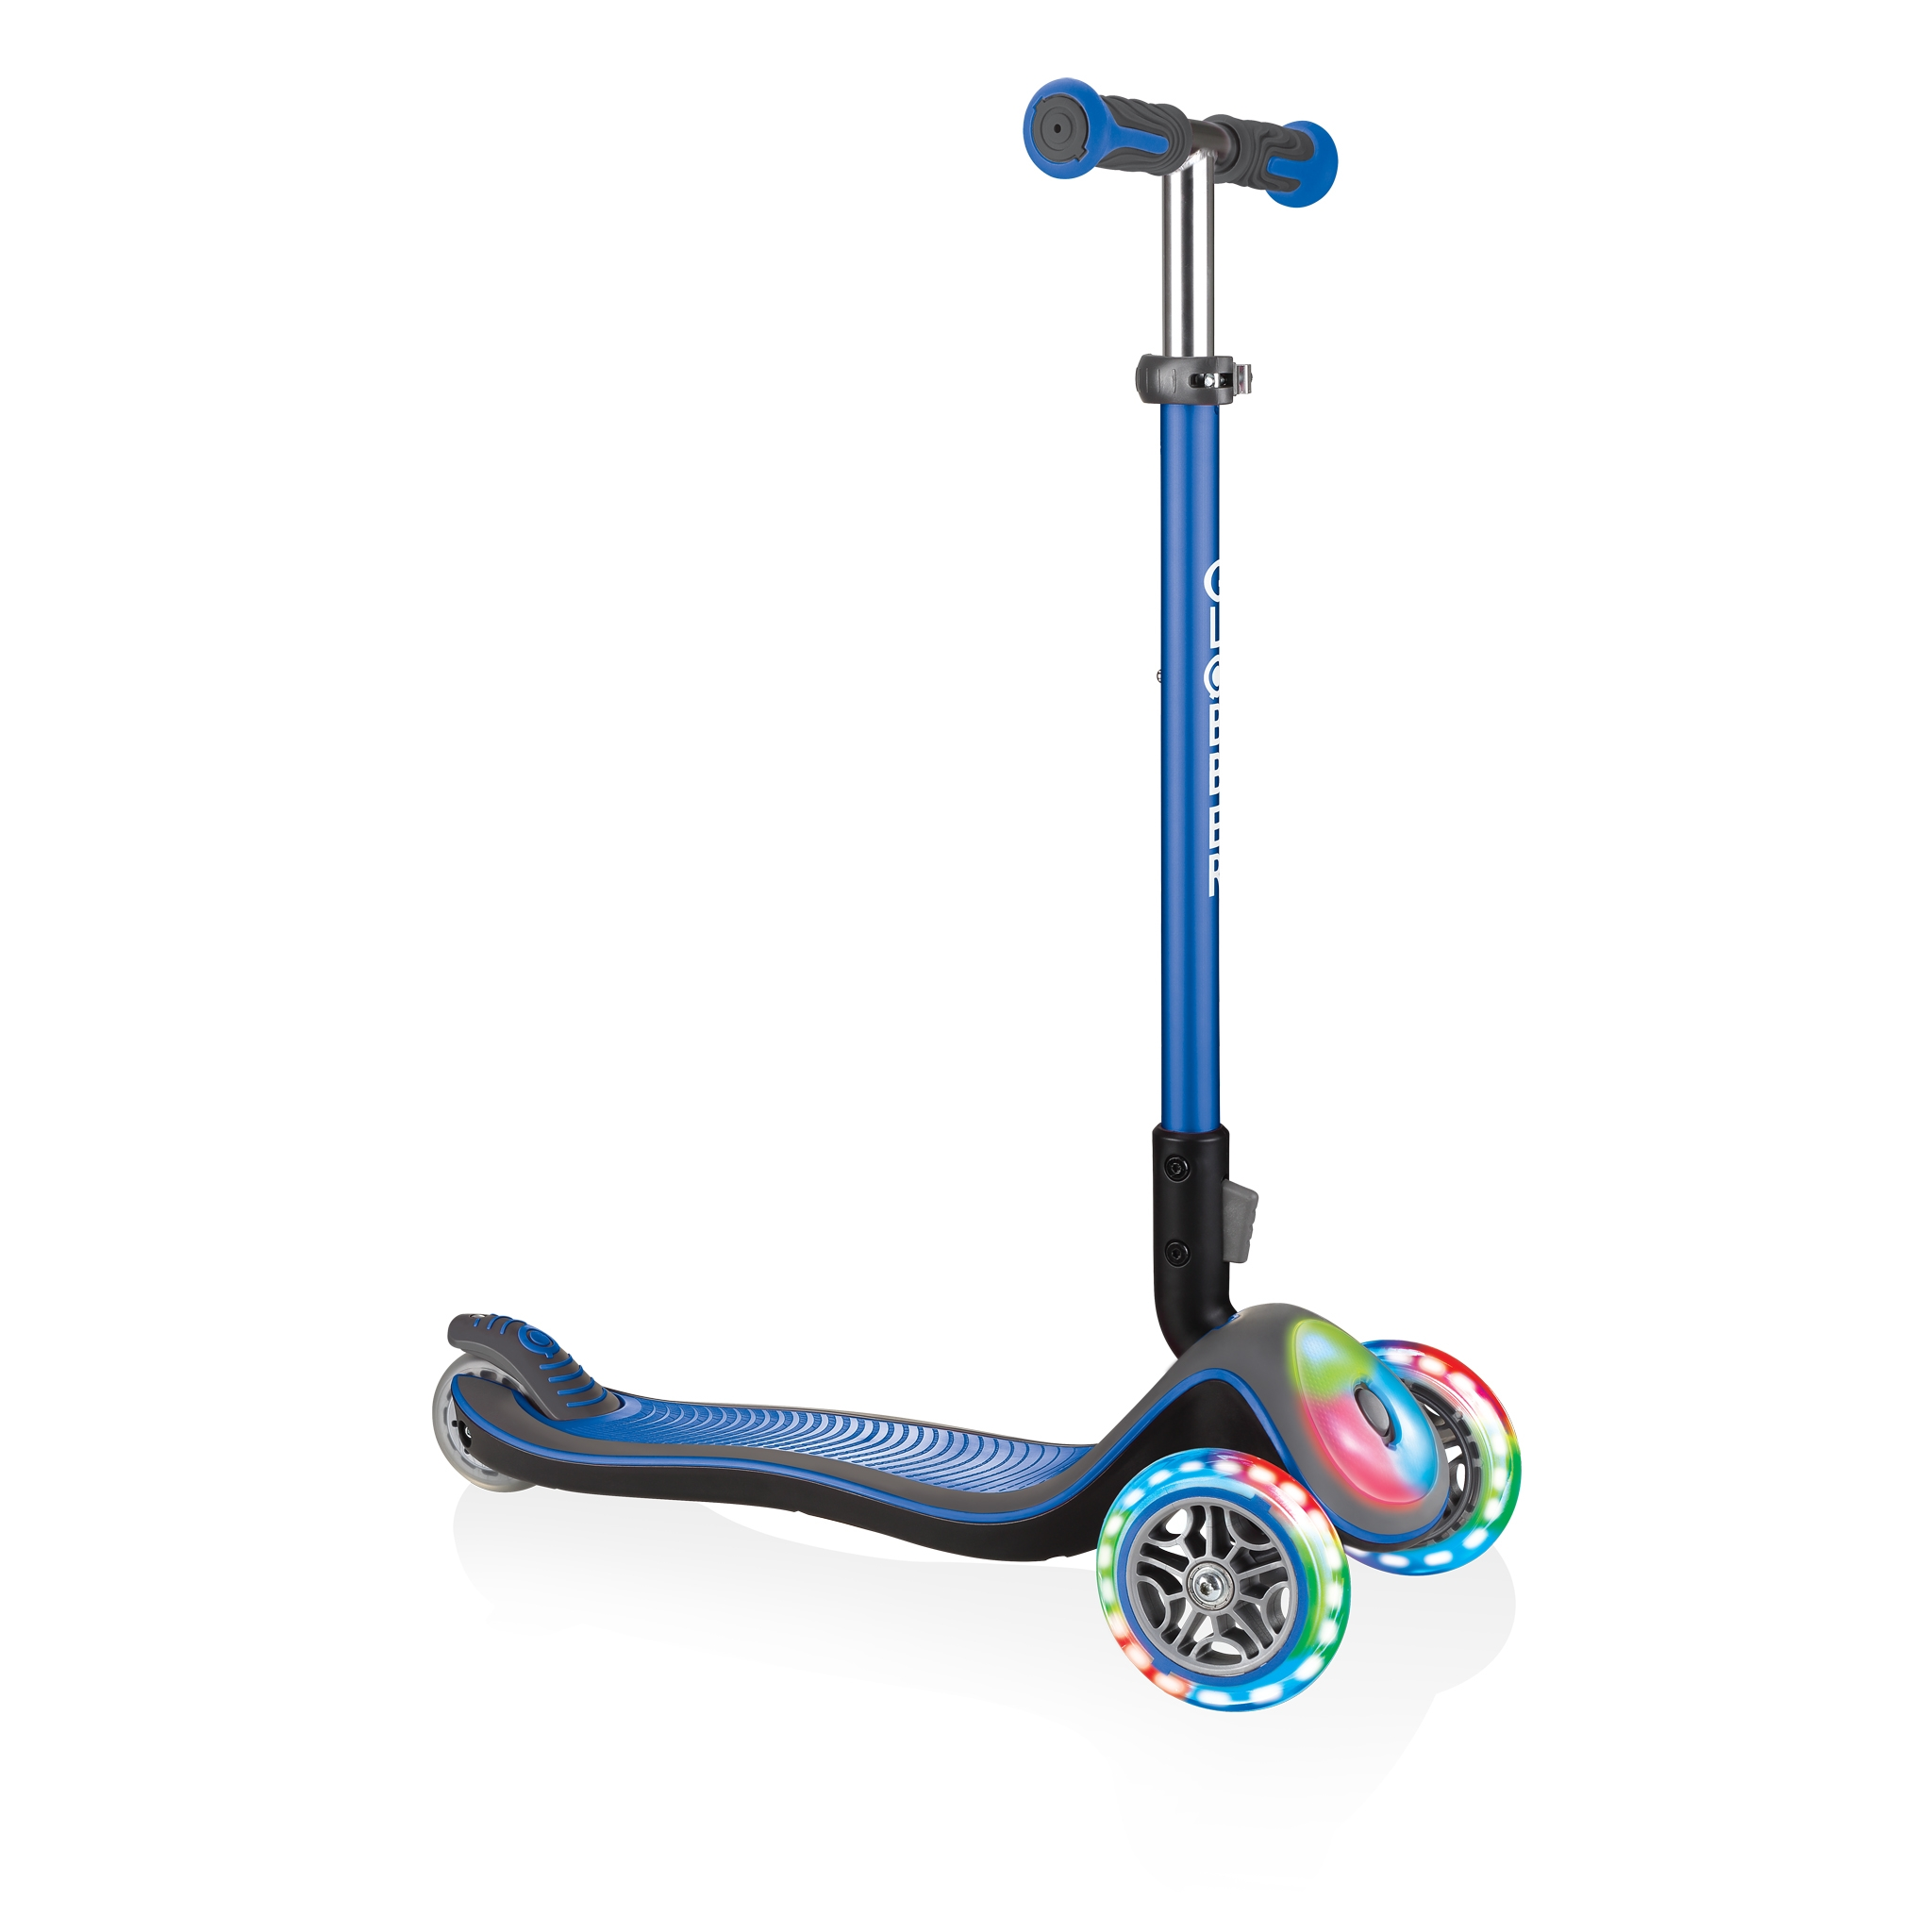 Globber-ELITE-DELUXE-FLASH-LIGHTS-3-wheel-light-up-scooter-for-kids-aged-3+-navy-blue